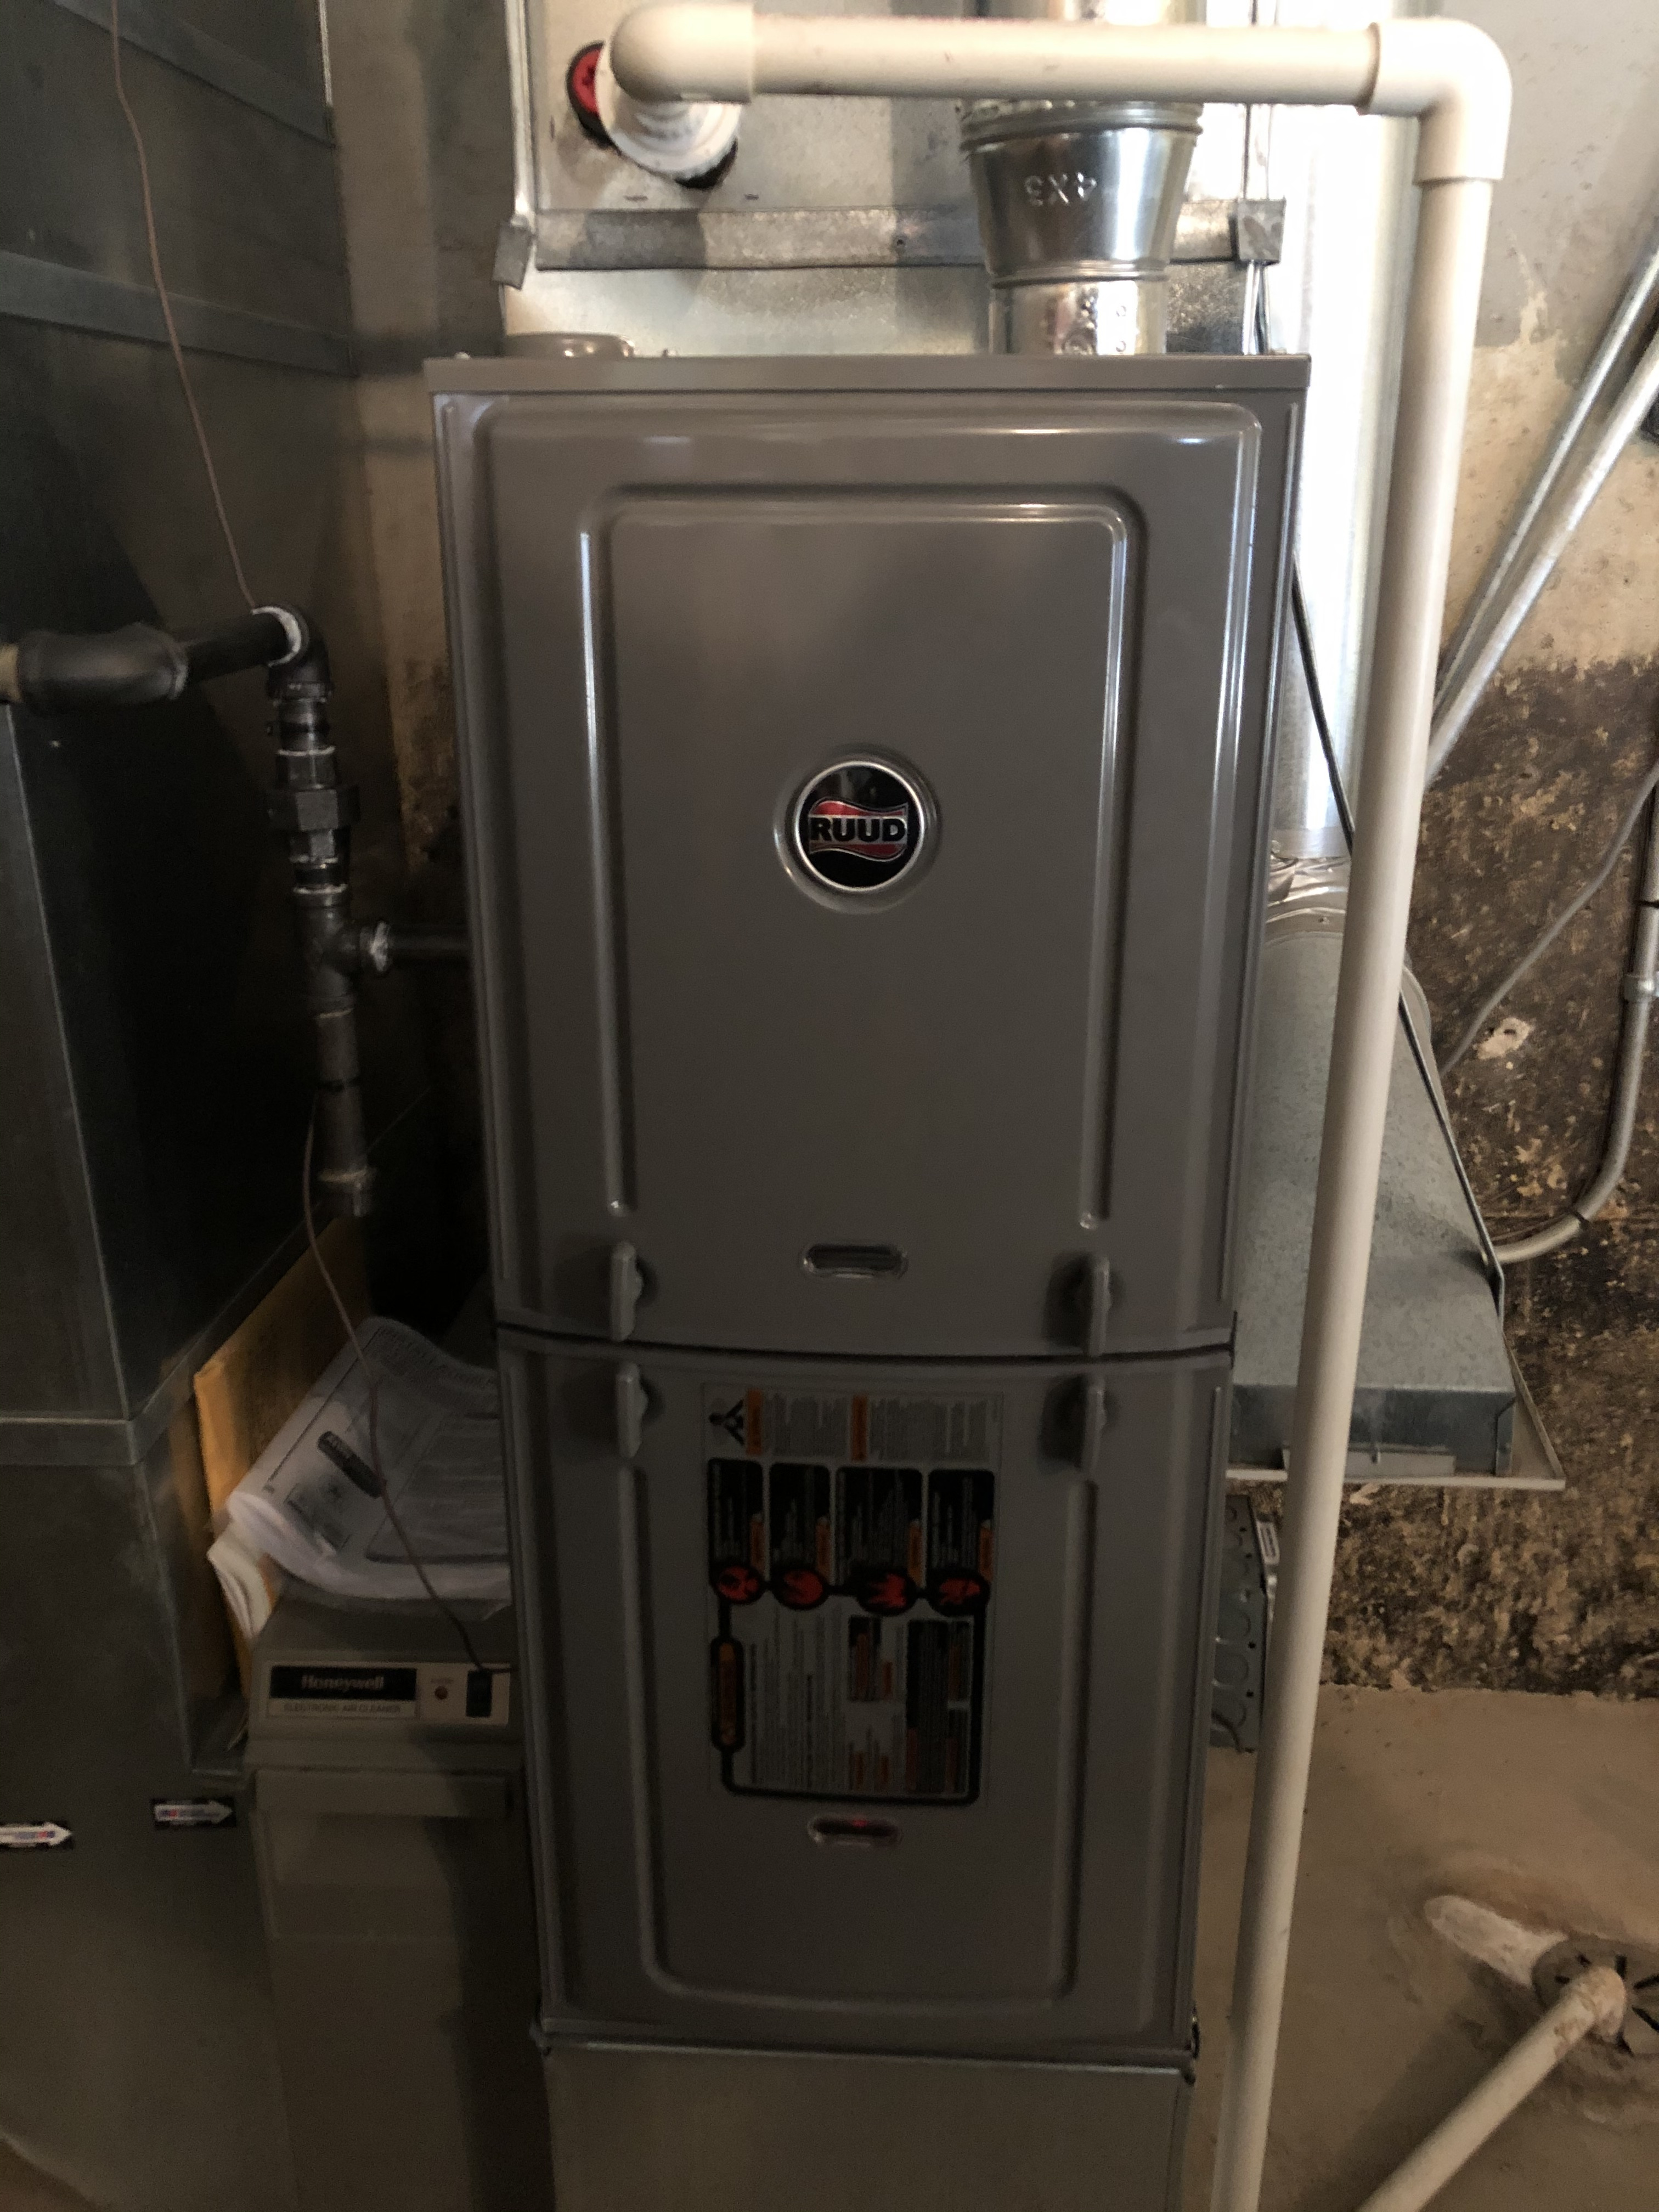 Protect your investment. Have annual maintenance on your furnace even if it's new.